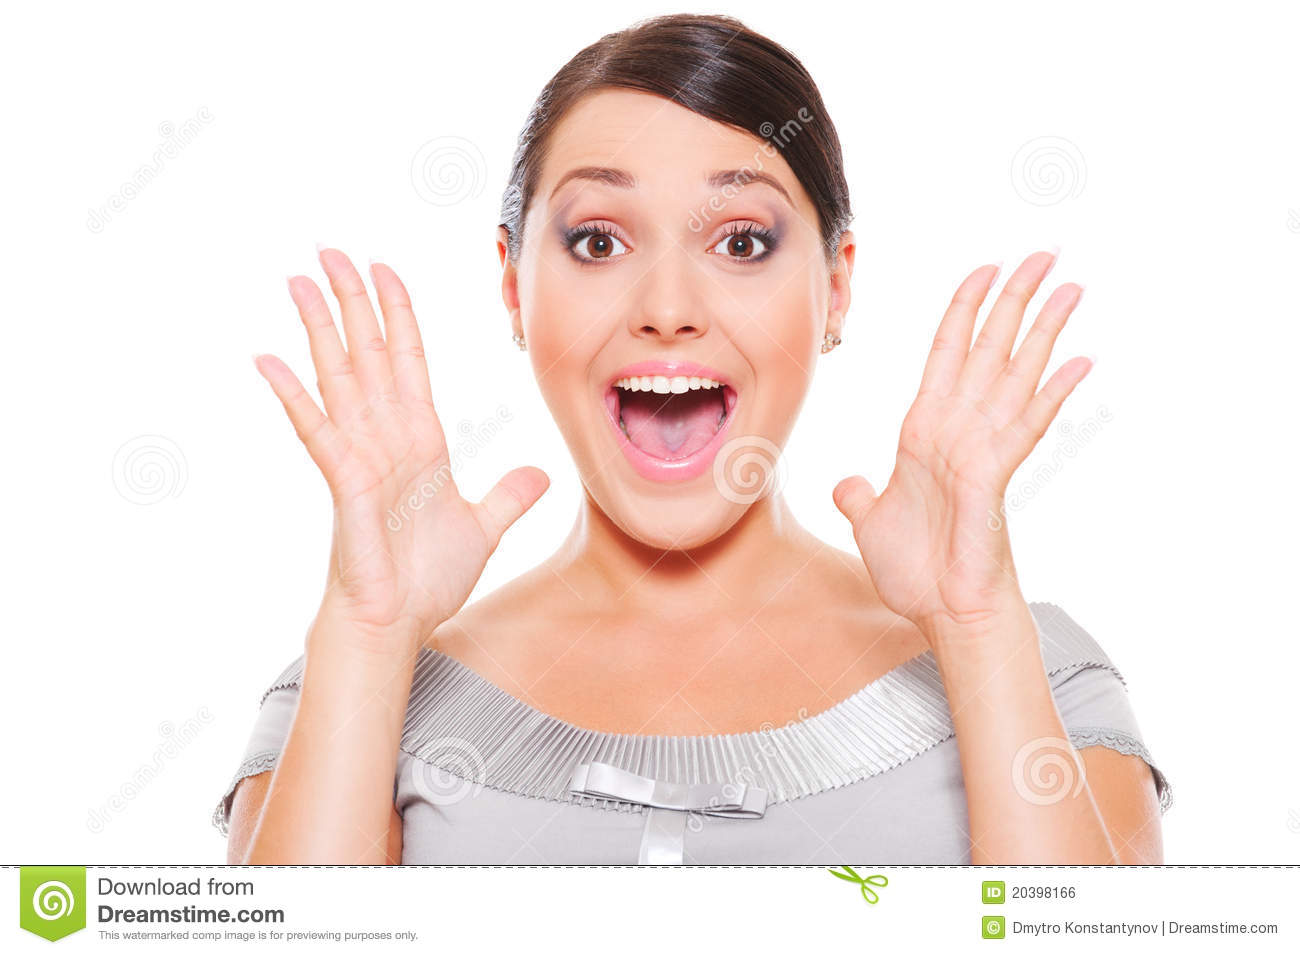 Surprised Woman Royalty Free Stock Image - Image: 20398166 Woman